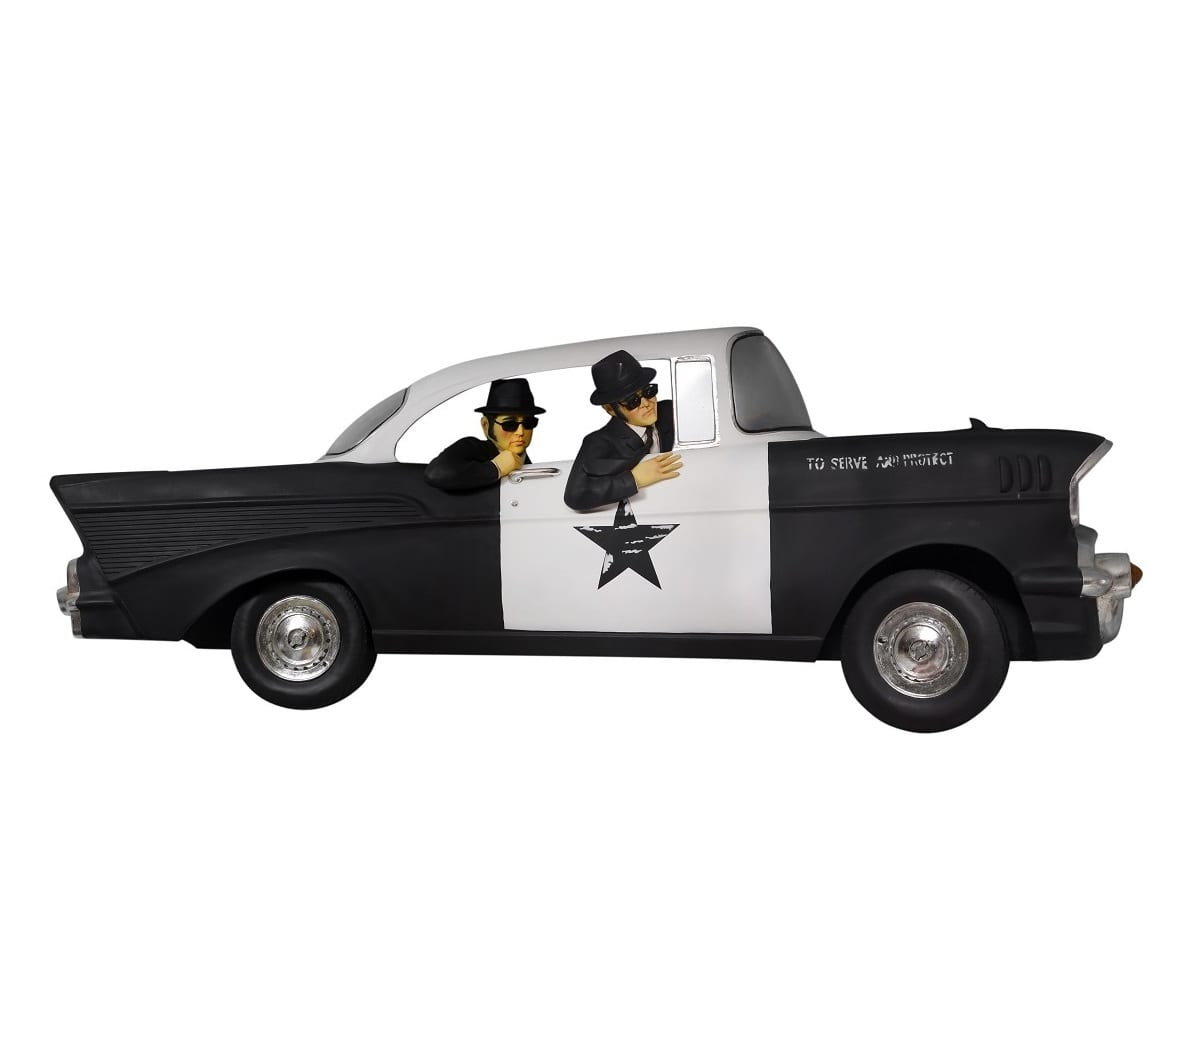 The Blues Brothers in the car